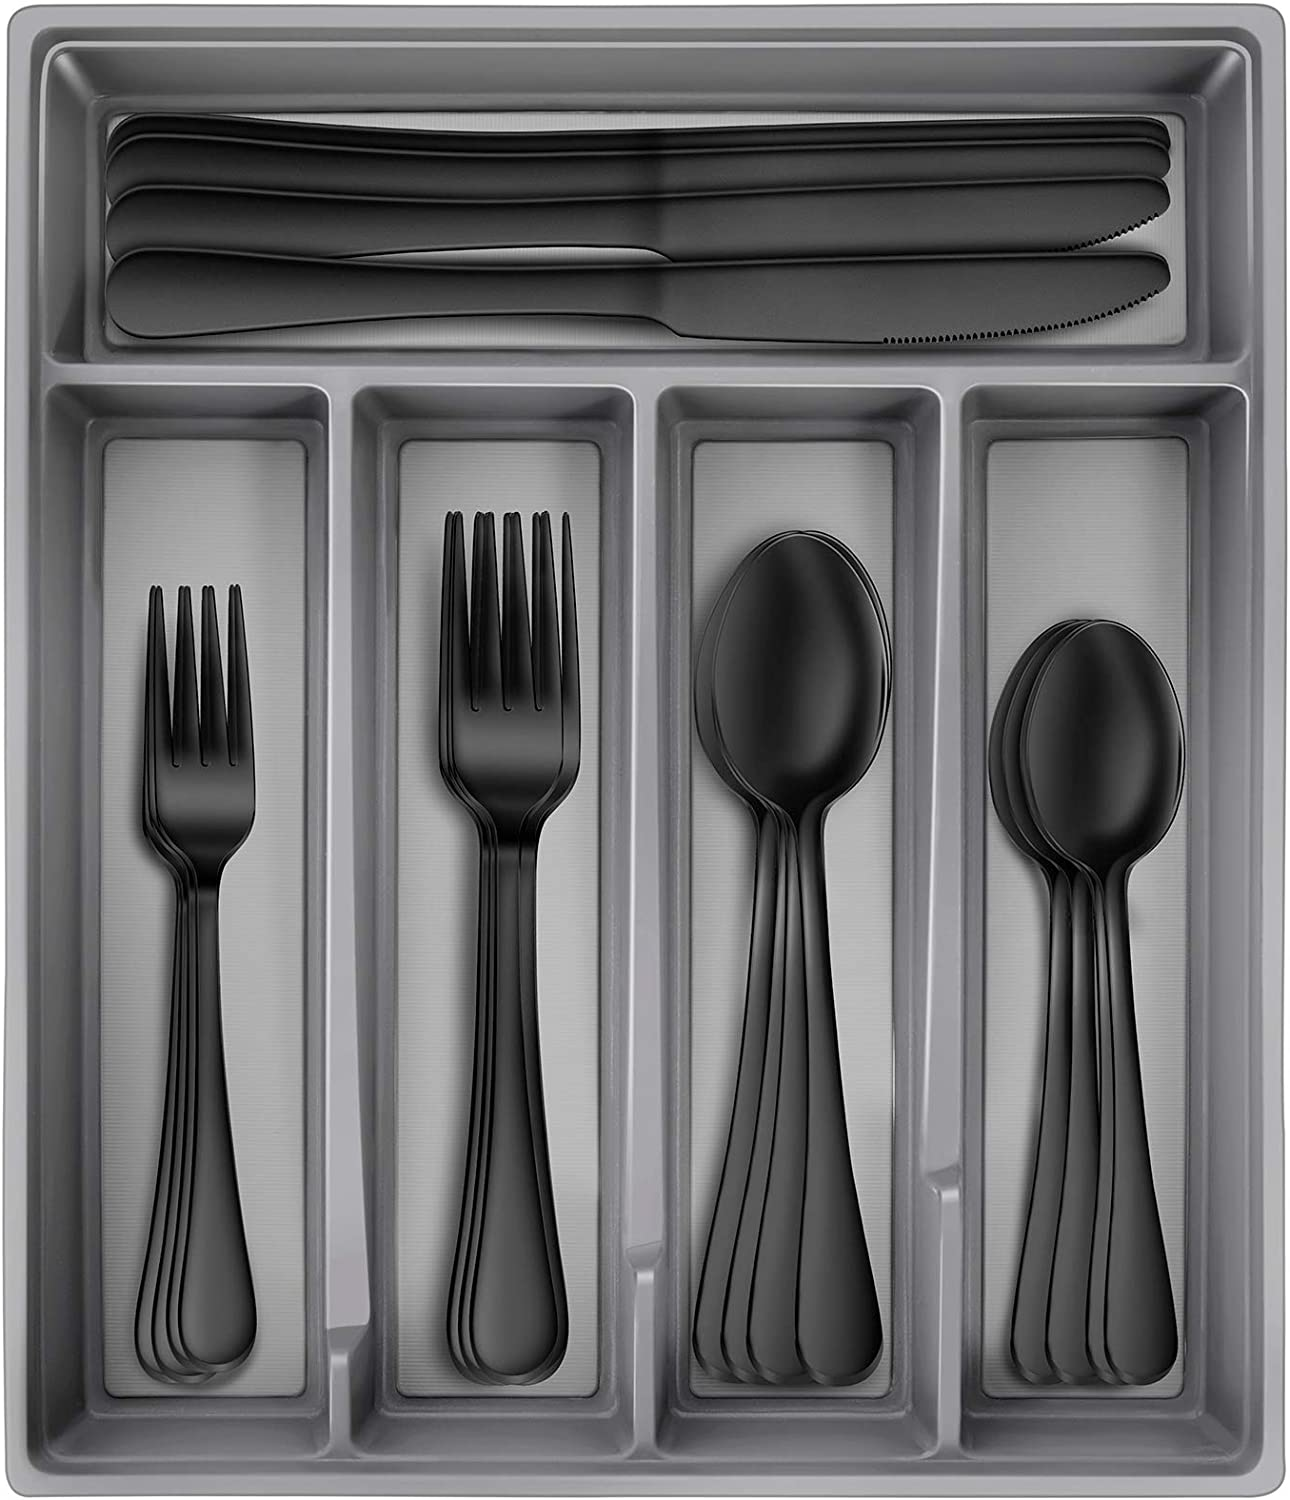 Hiware Black Silverware Set with Tray, 20-Piece Stainless Steel Flatware Cutlery Set Service for 4, Mirror Finish, Dishwasher Safe